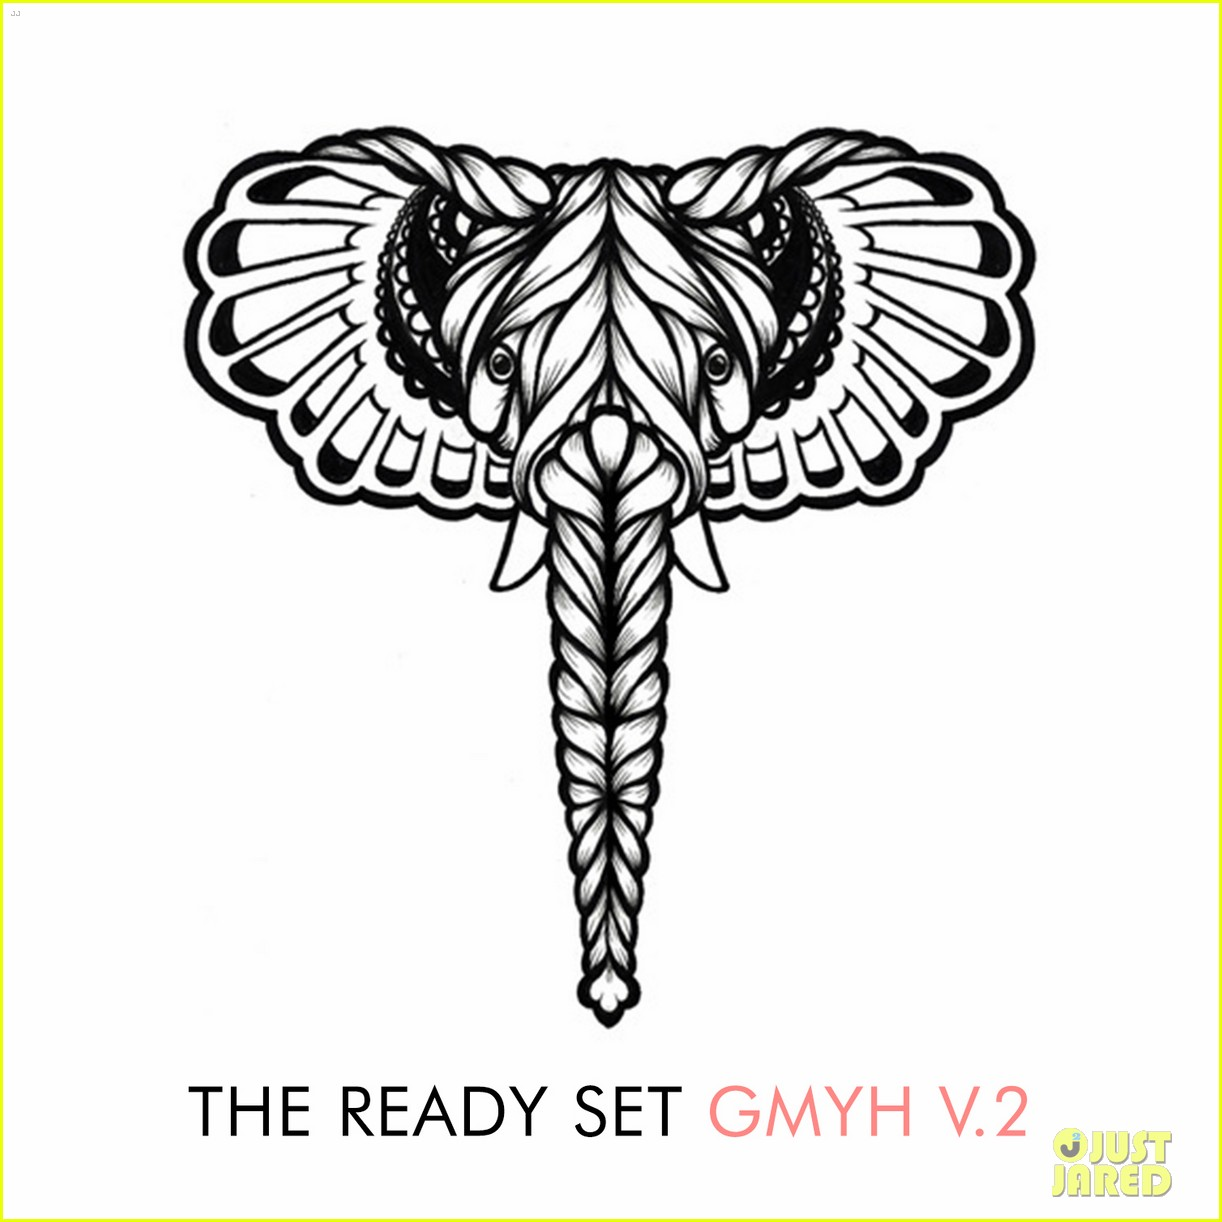 the ready set remix 03.